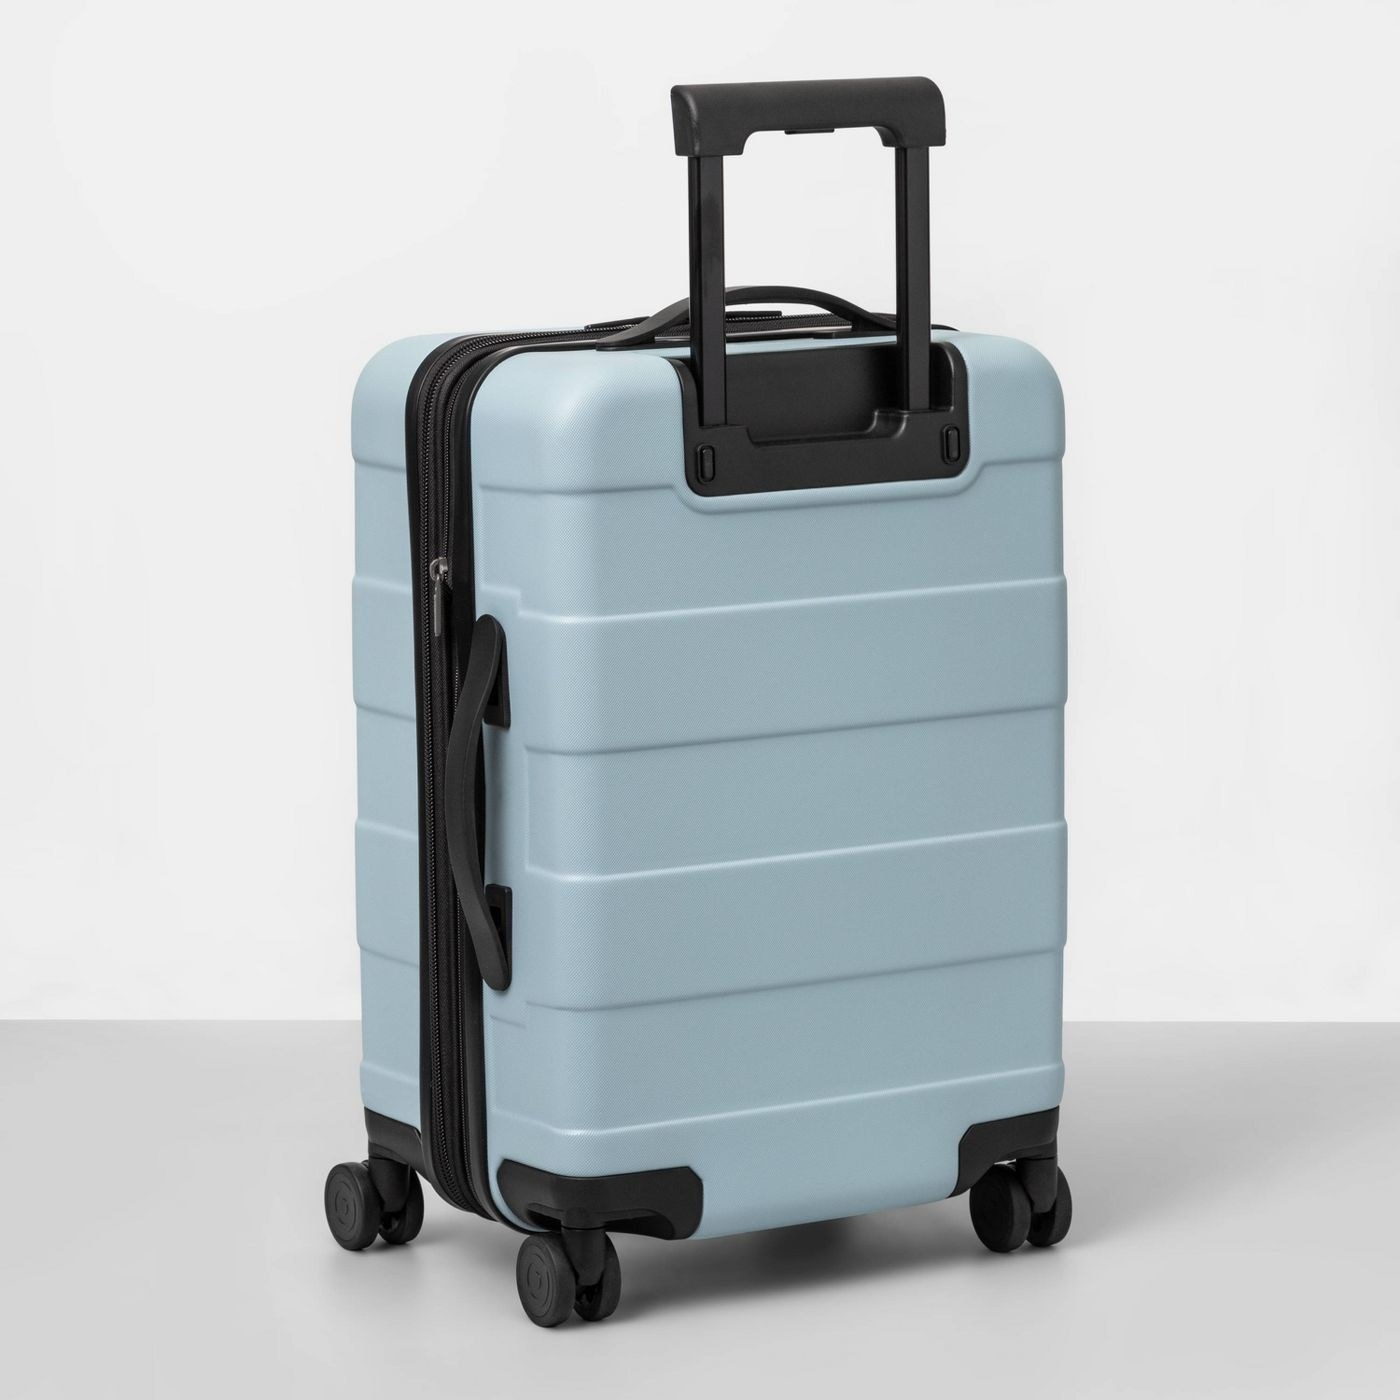 A light blue hard cover carry on suitcase